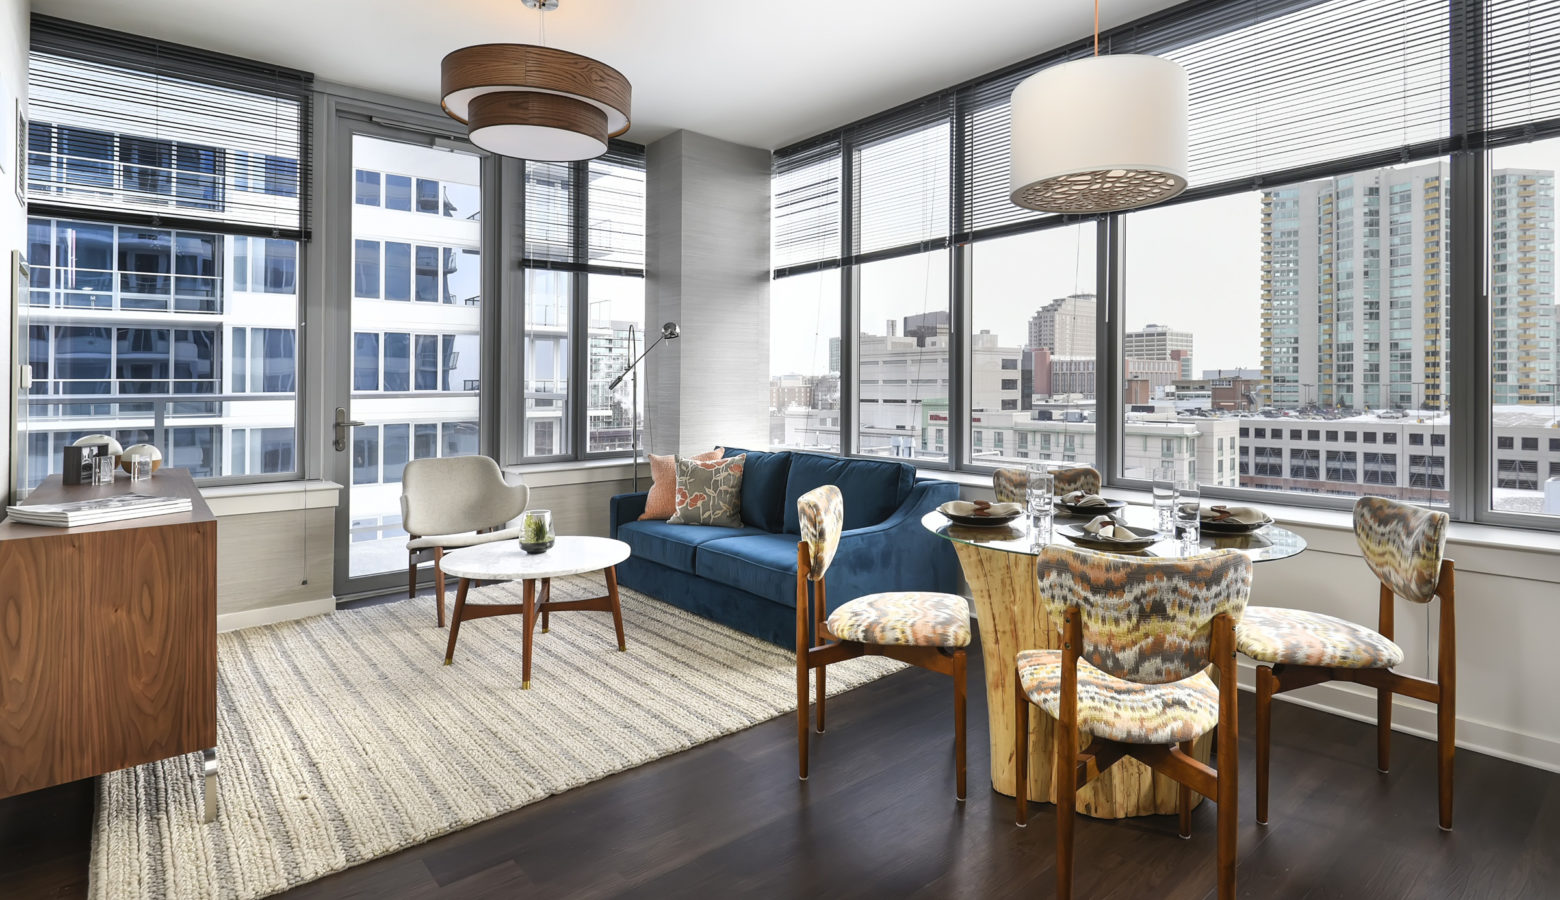 Interior design tips how to make a your rental apartment - Rental apartment interior design ...